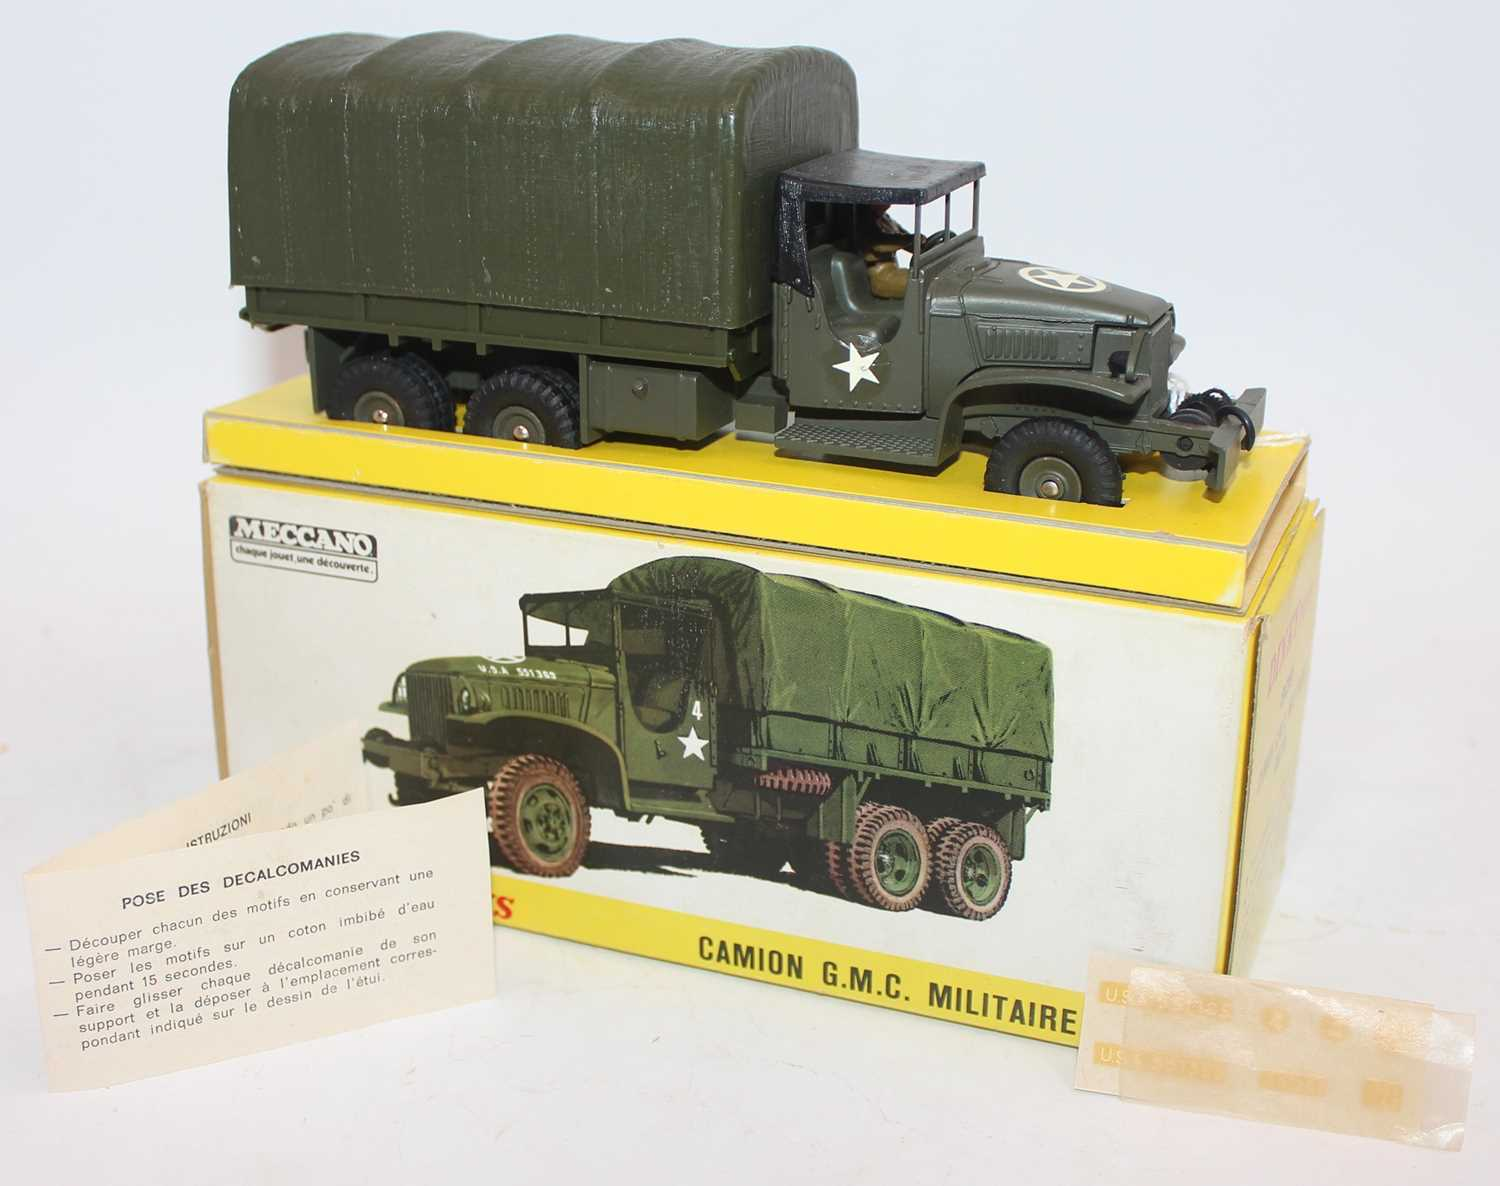 French Dinky Toys Camion 809 G.M.C. Militaire Bache. In olive green with U.S. Army livery and - Image 2 of 2